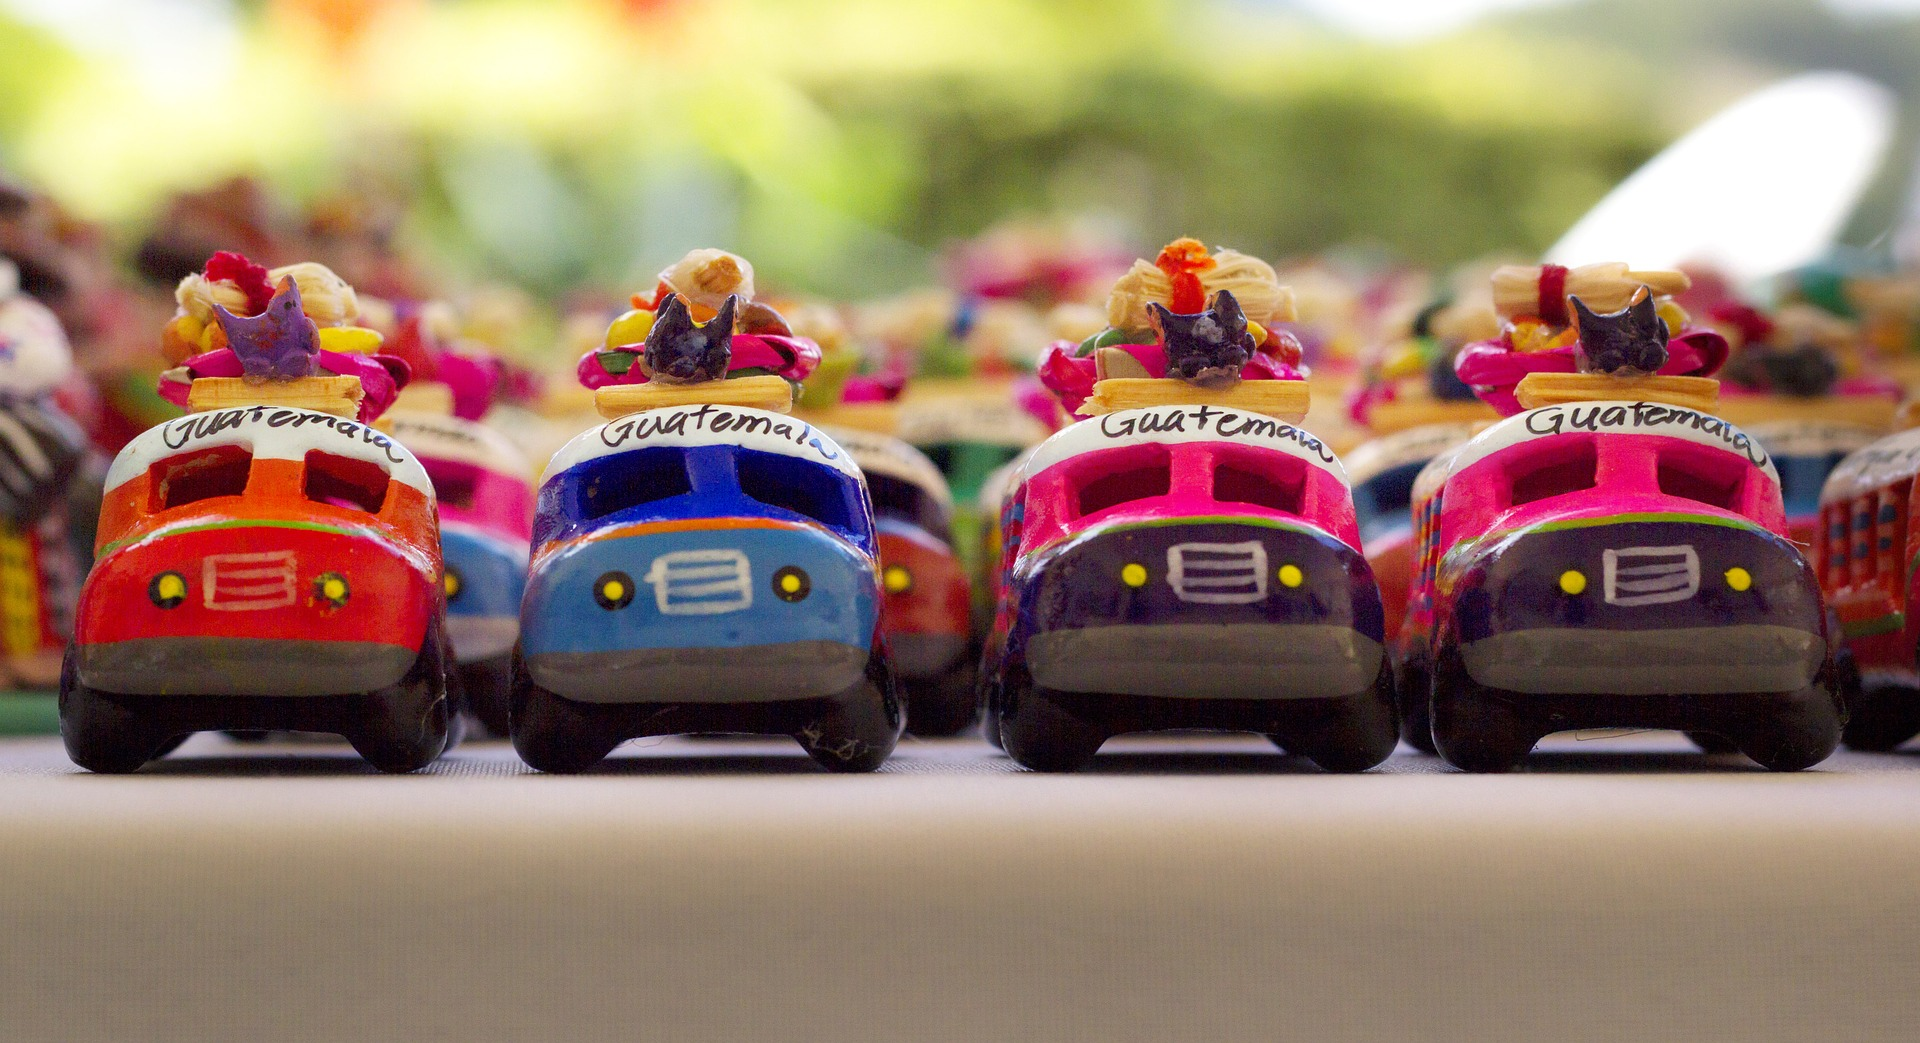 Ornamental toy buses in Guatemala